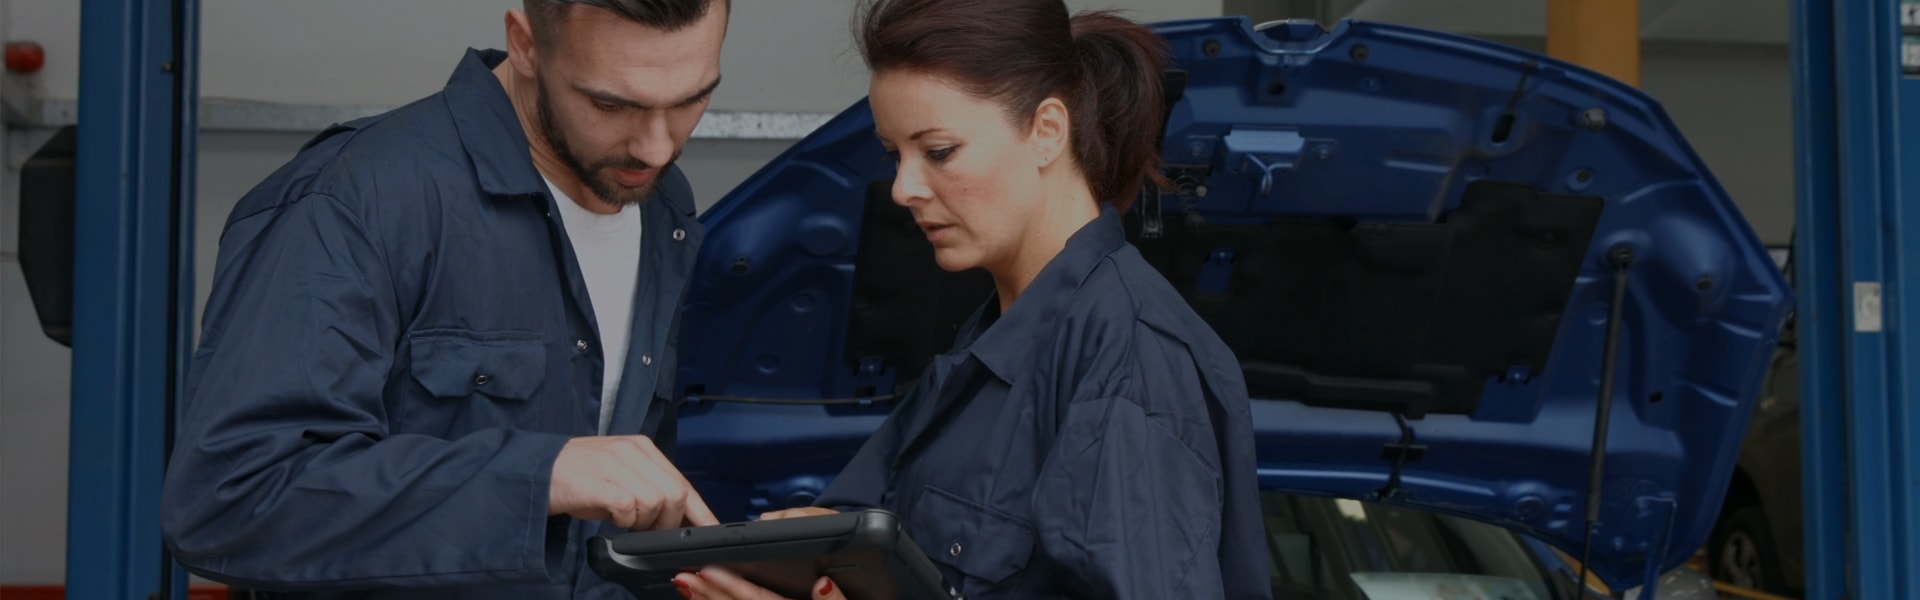 Auto Technicians Looking at iPad